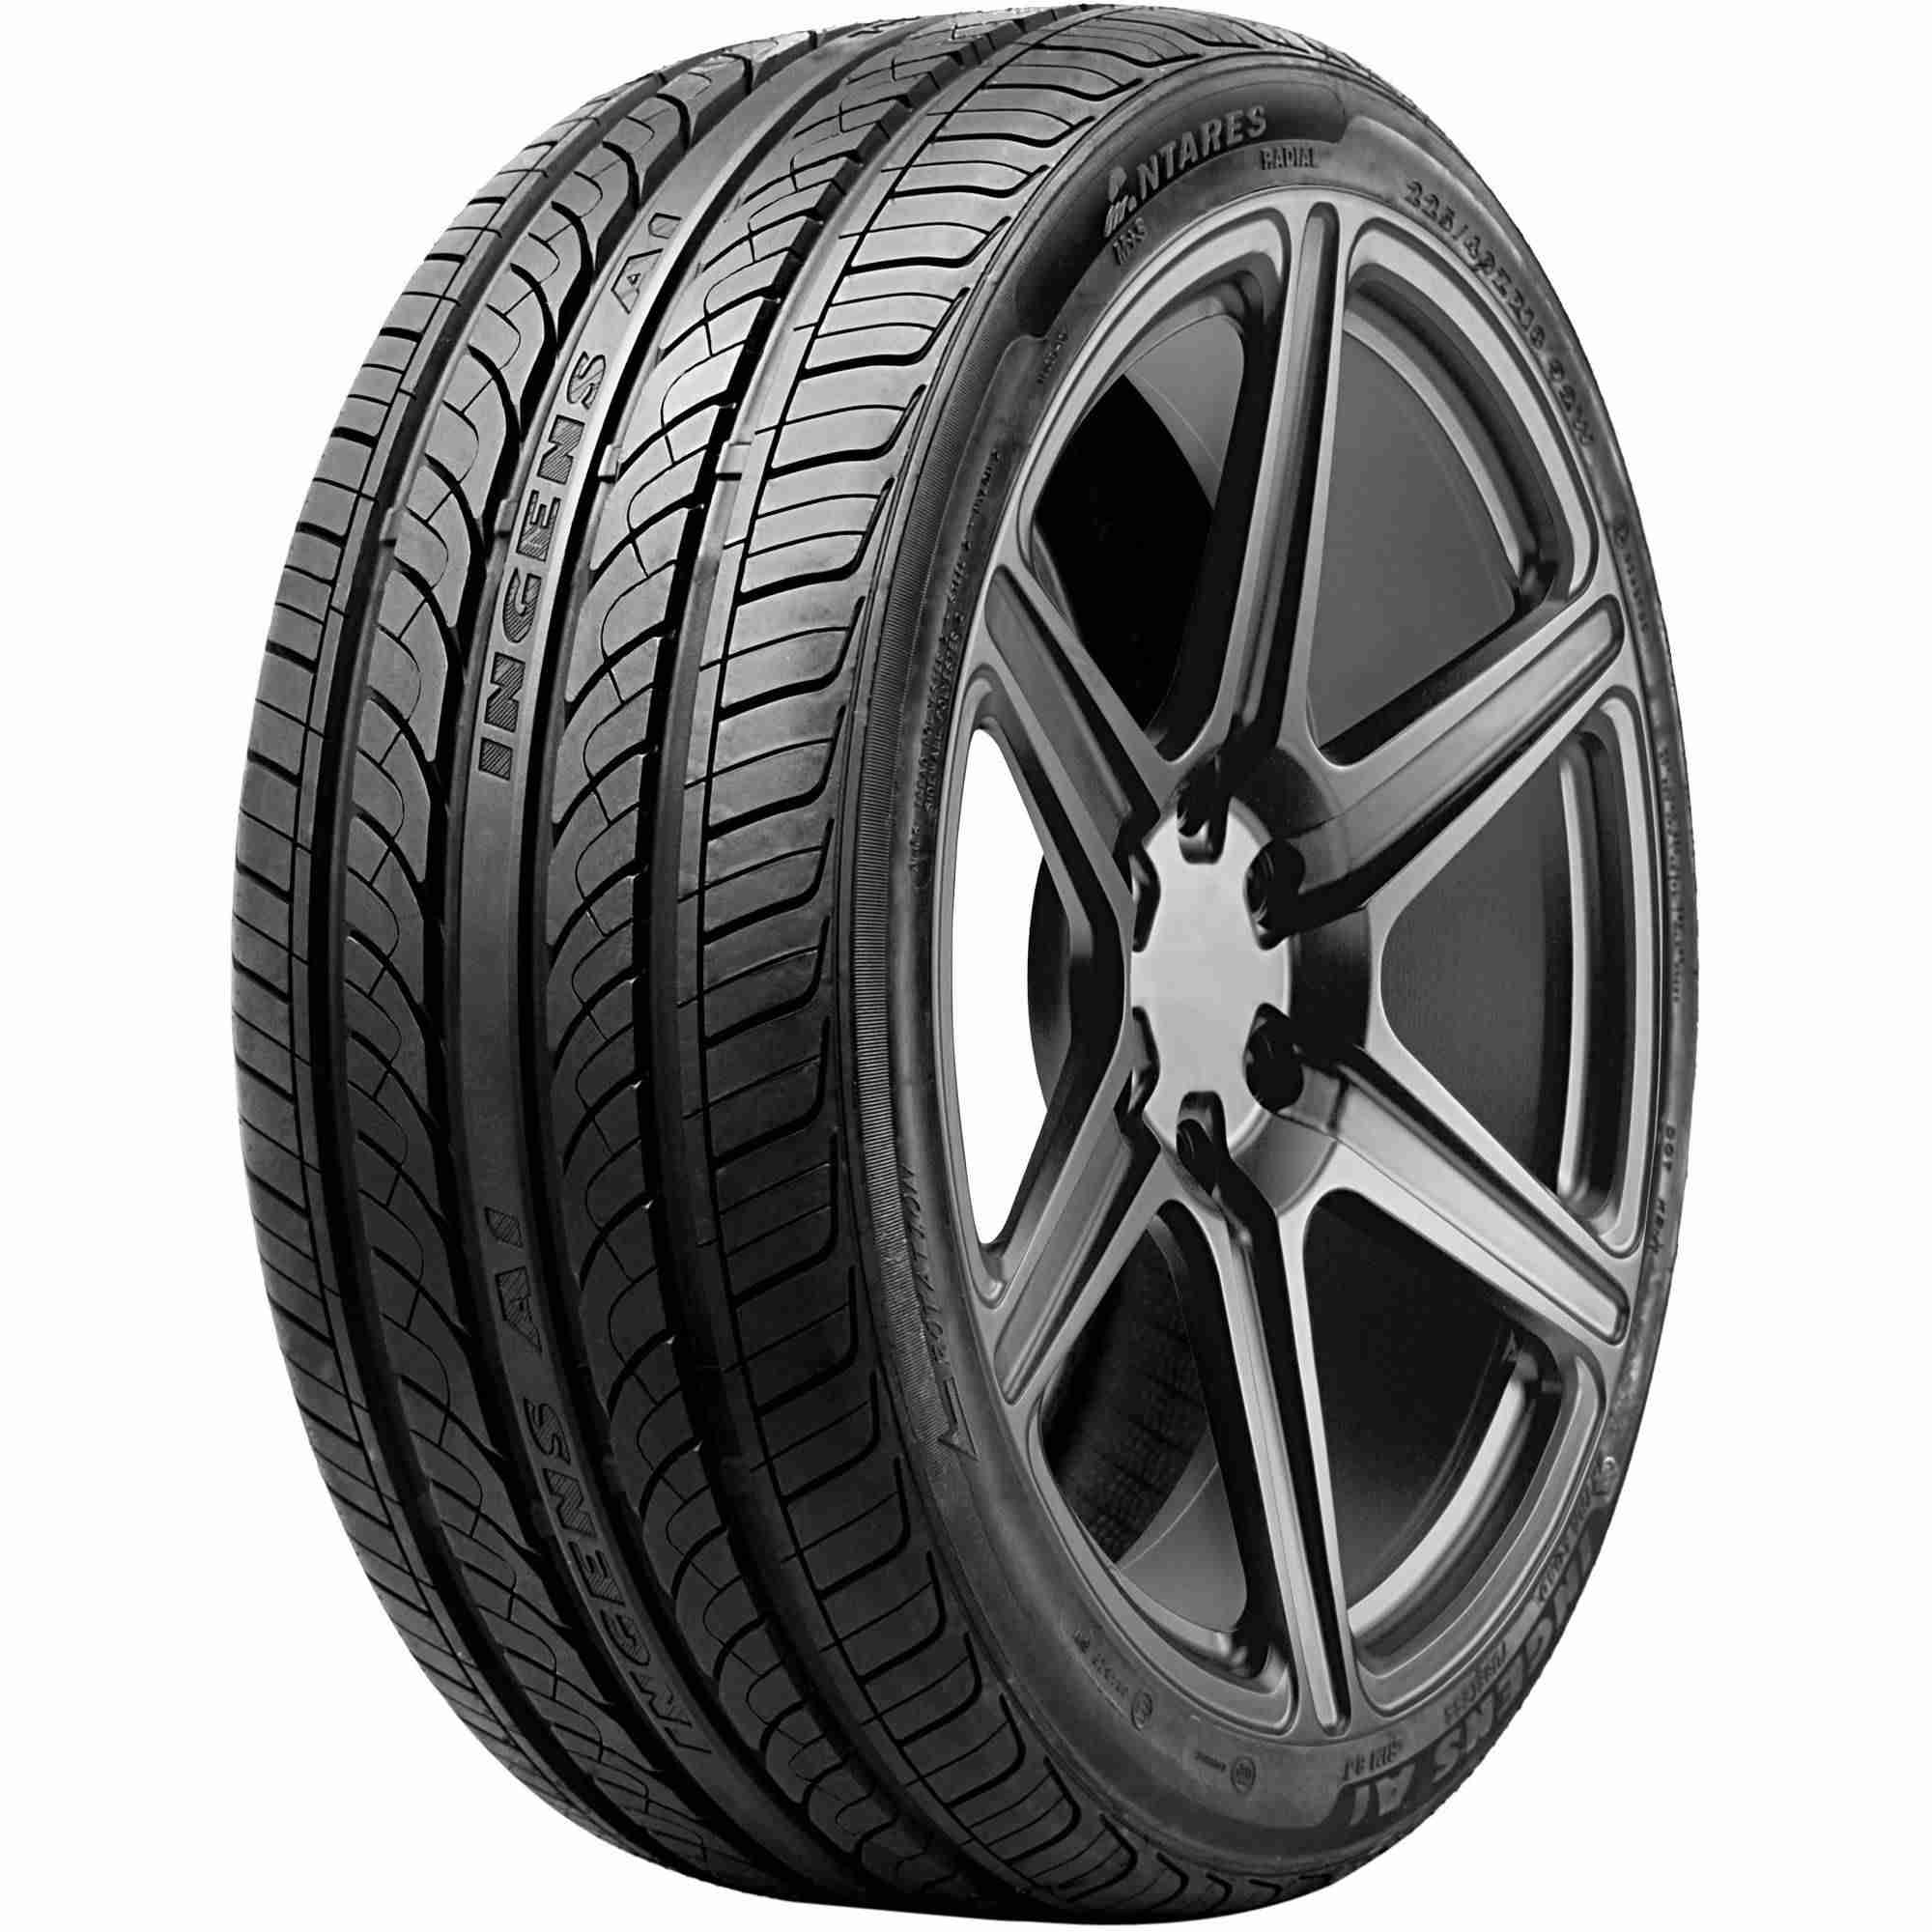 Antares Ingens A1 All-Season Tire - 245/45R18 100W